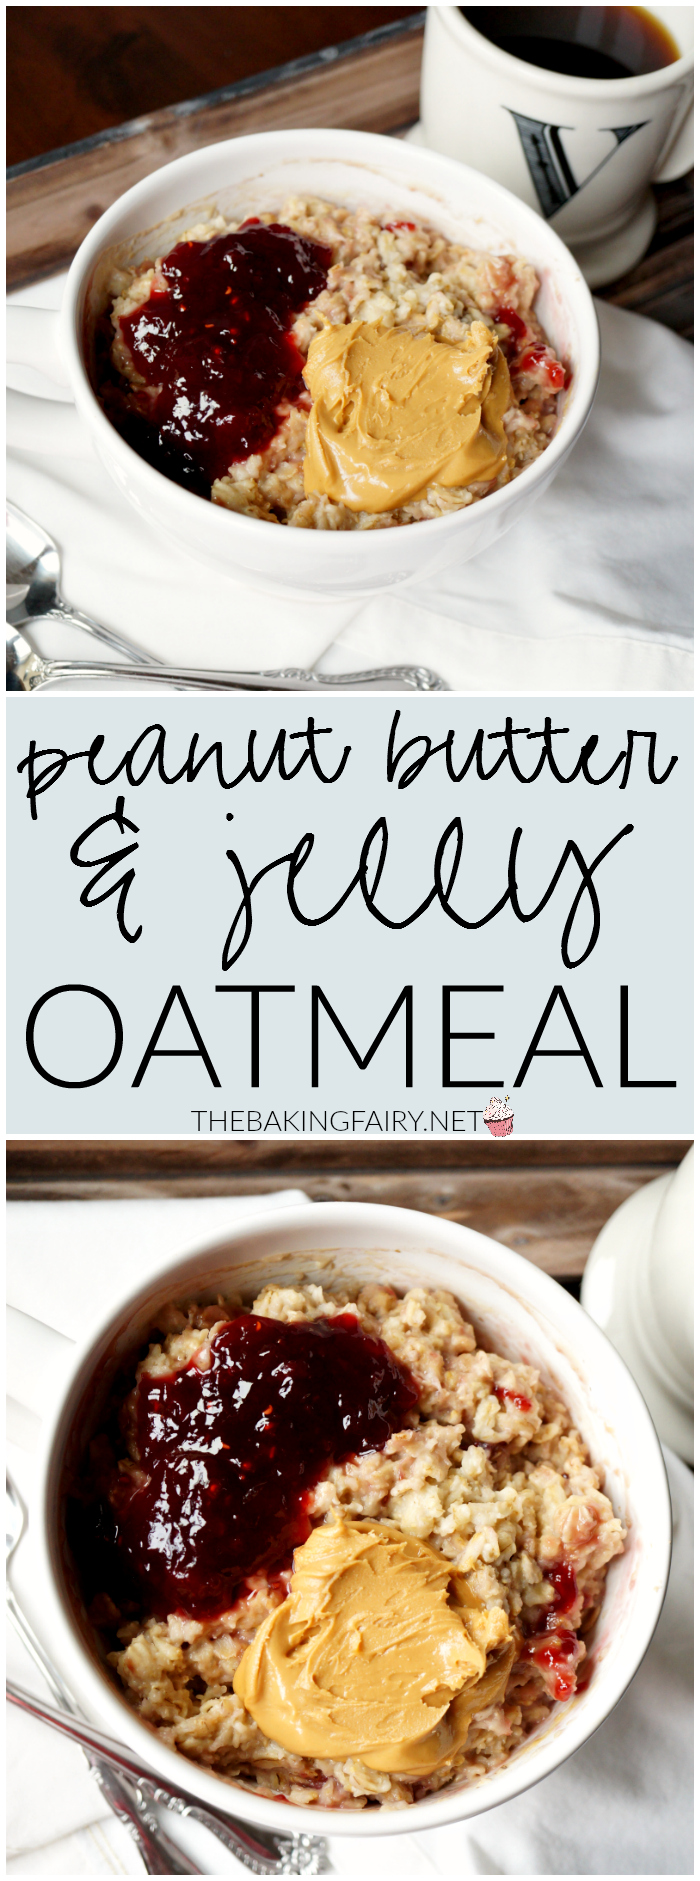 peanut butter & jelly oatmeal | The Baking Fairy